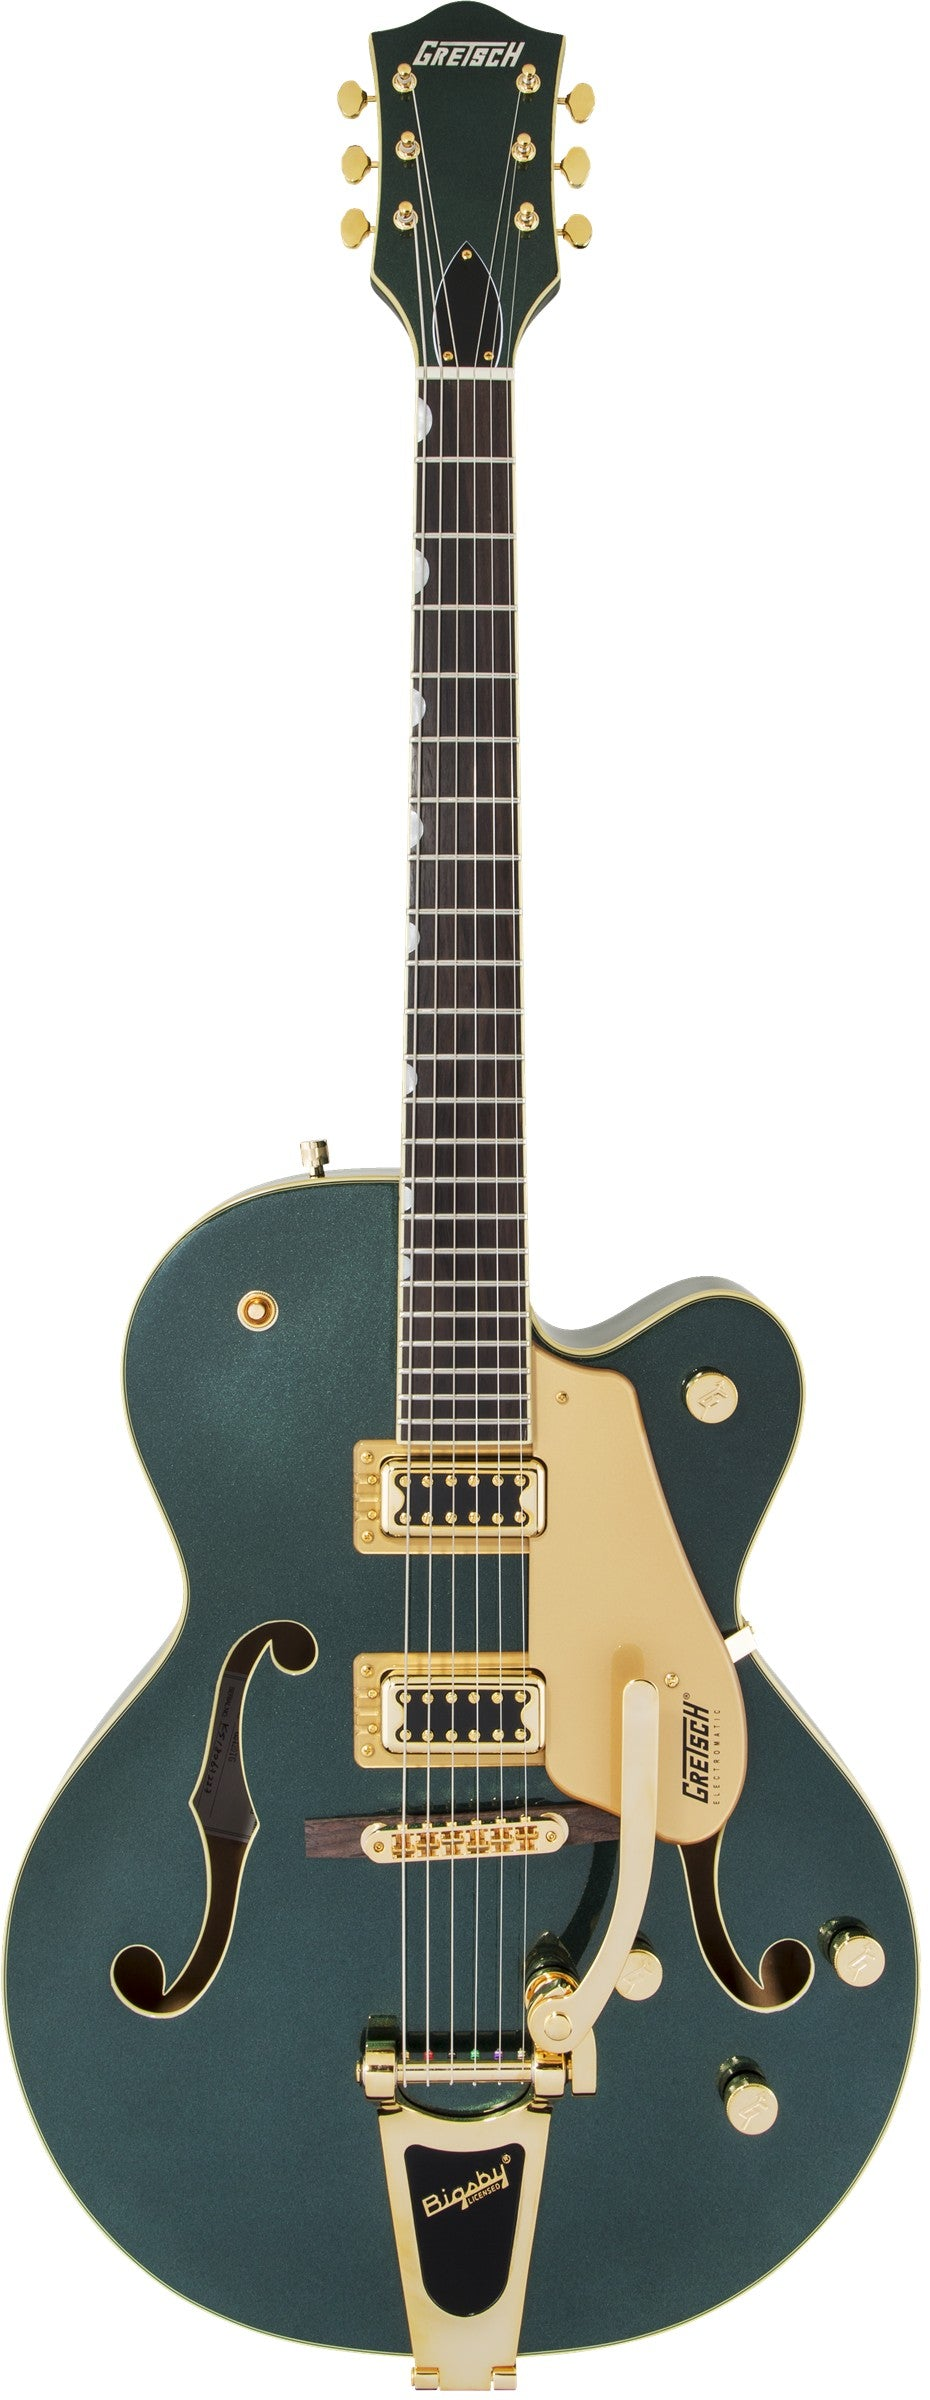 Gretsch G5420TG Limited Edition Electromatic Hollow Body Single Cut w/Bigsby & Gold Hardware - Cadillac Green